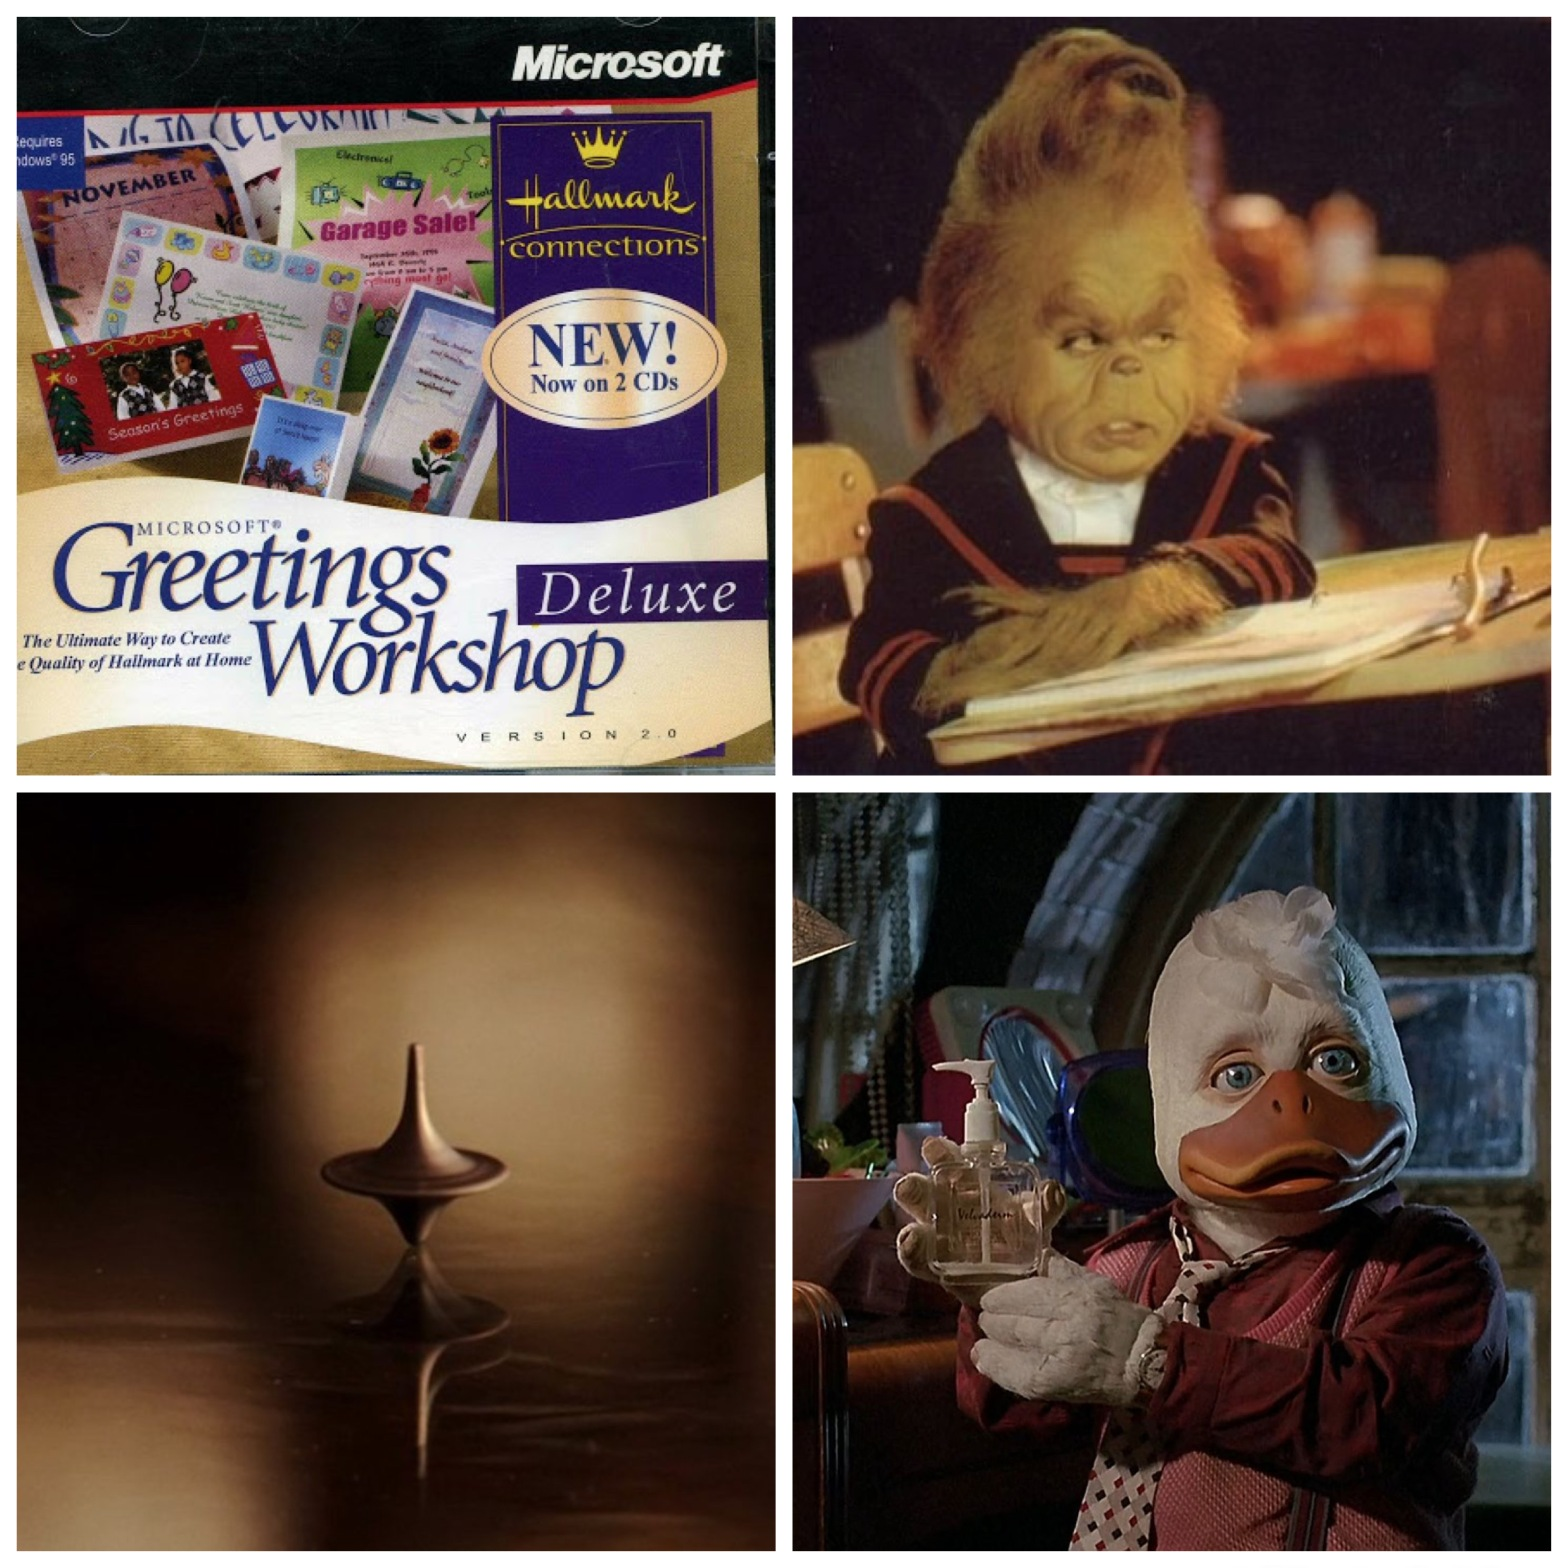 Hallmark Greetings Workshop software. The young version of the live-action Grinch. The spinning top from Inception. The regular version of the live-action Howard The Duck.